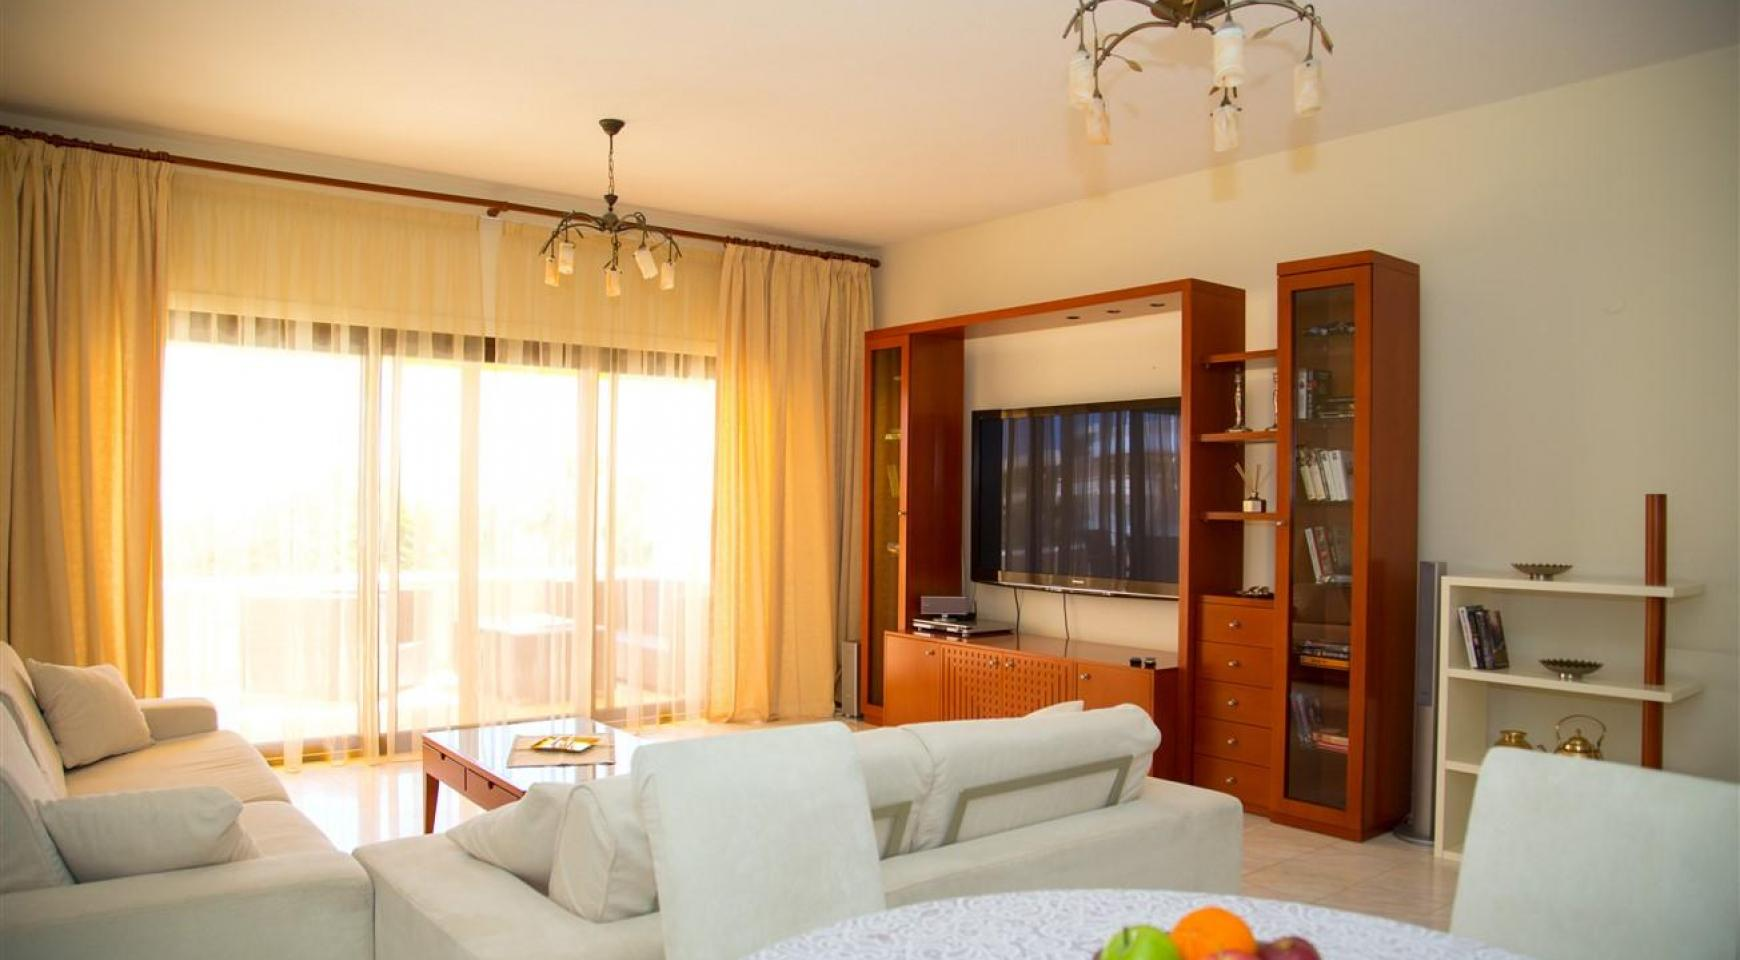 3 Bedroom Apartment in a Gated Complex by the Sea - 21